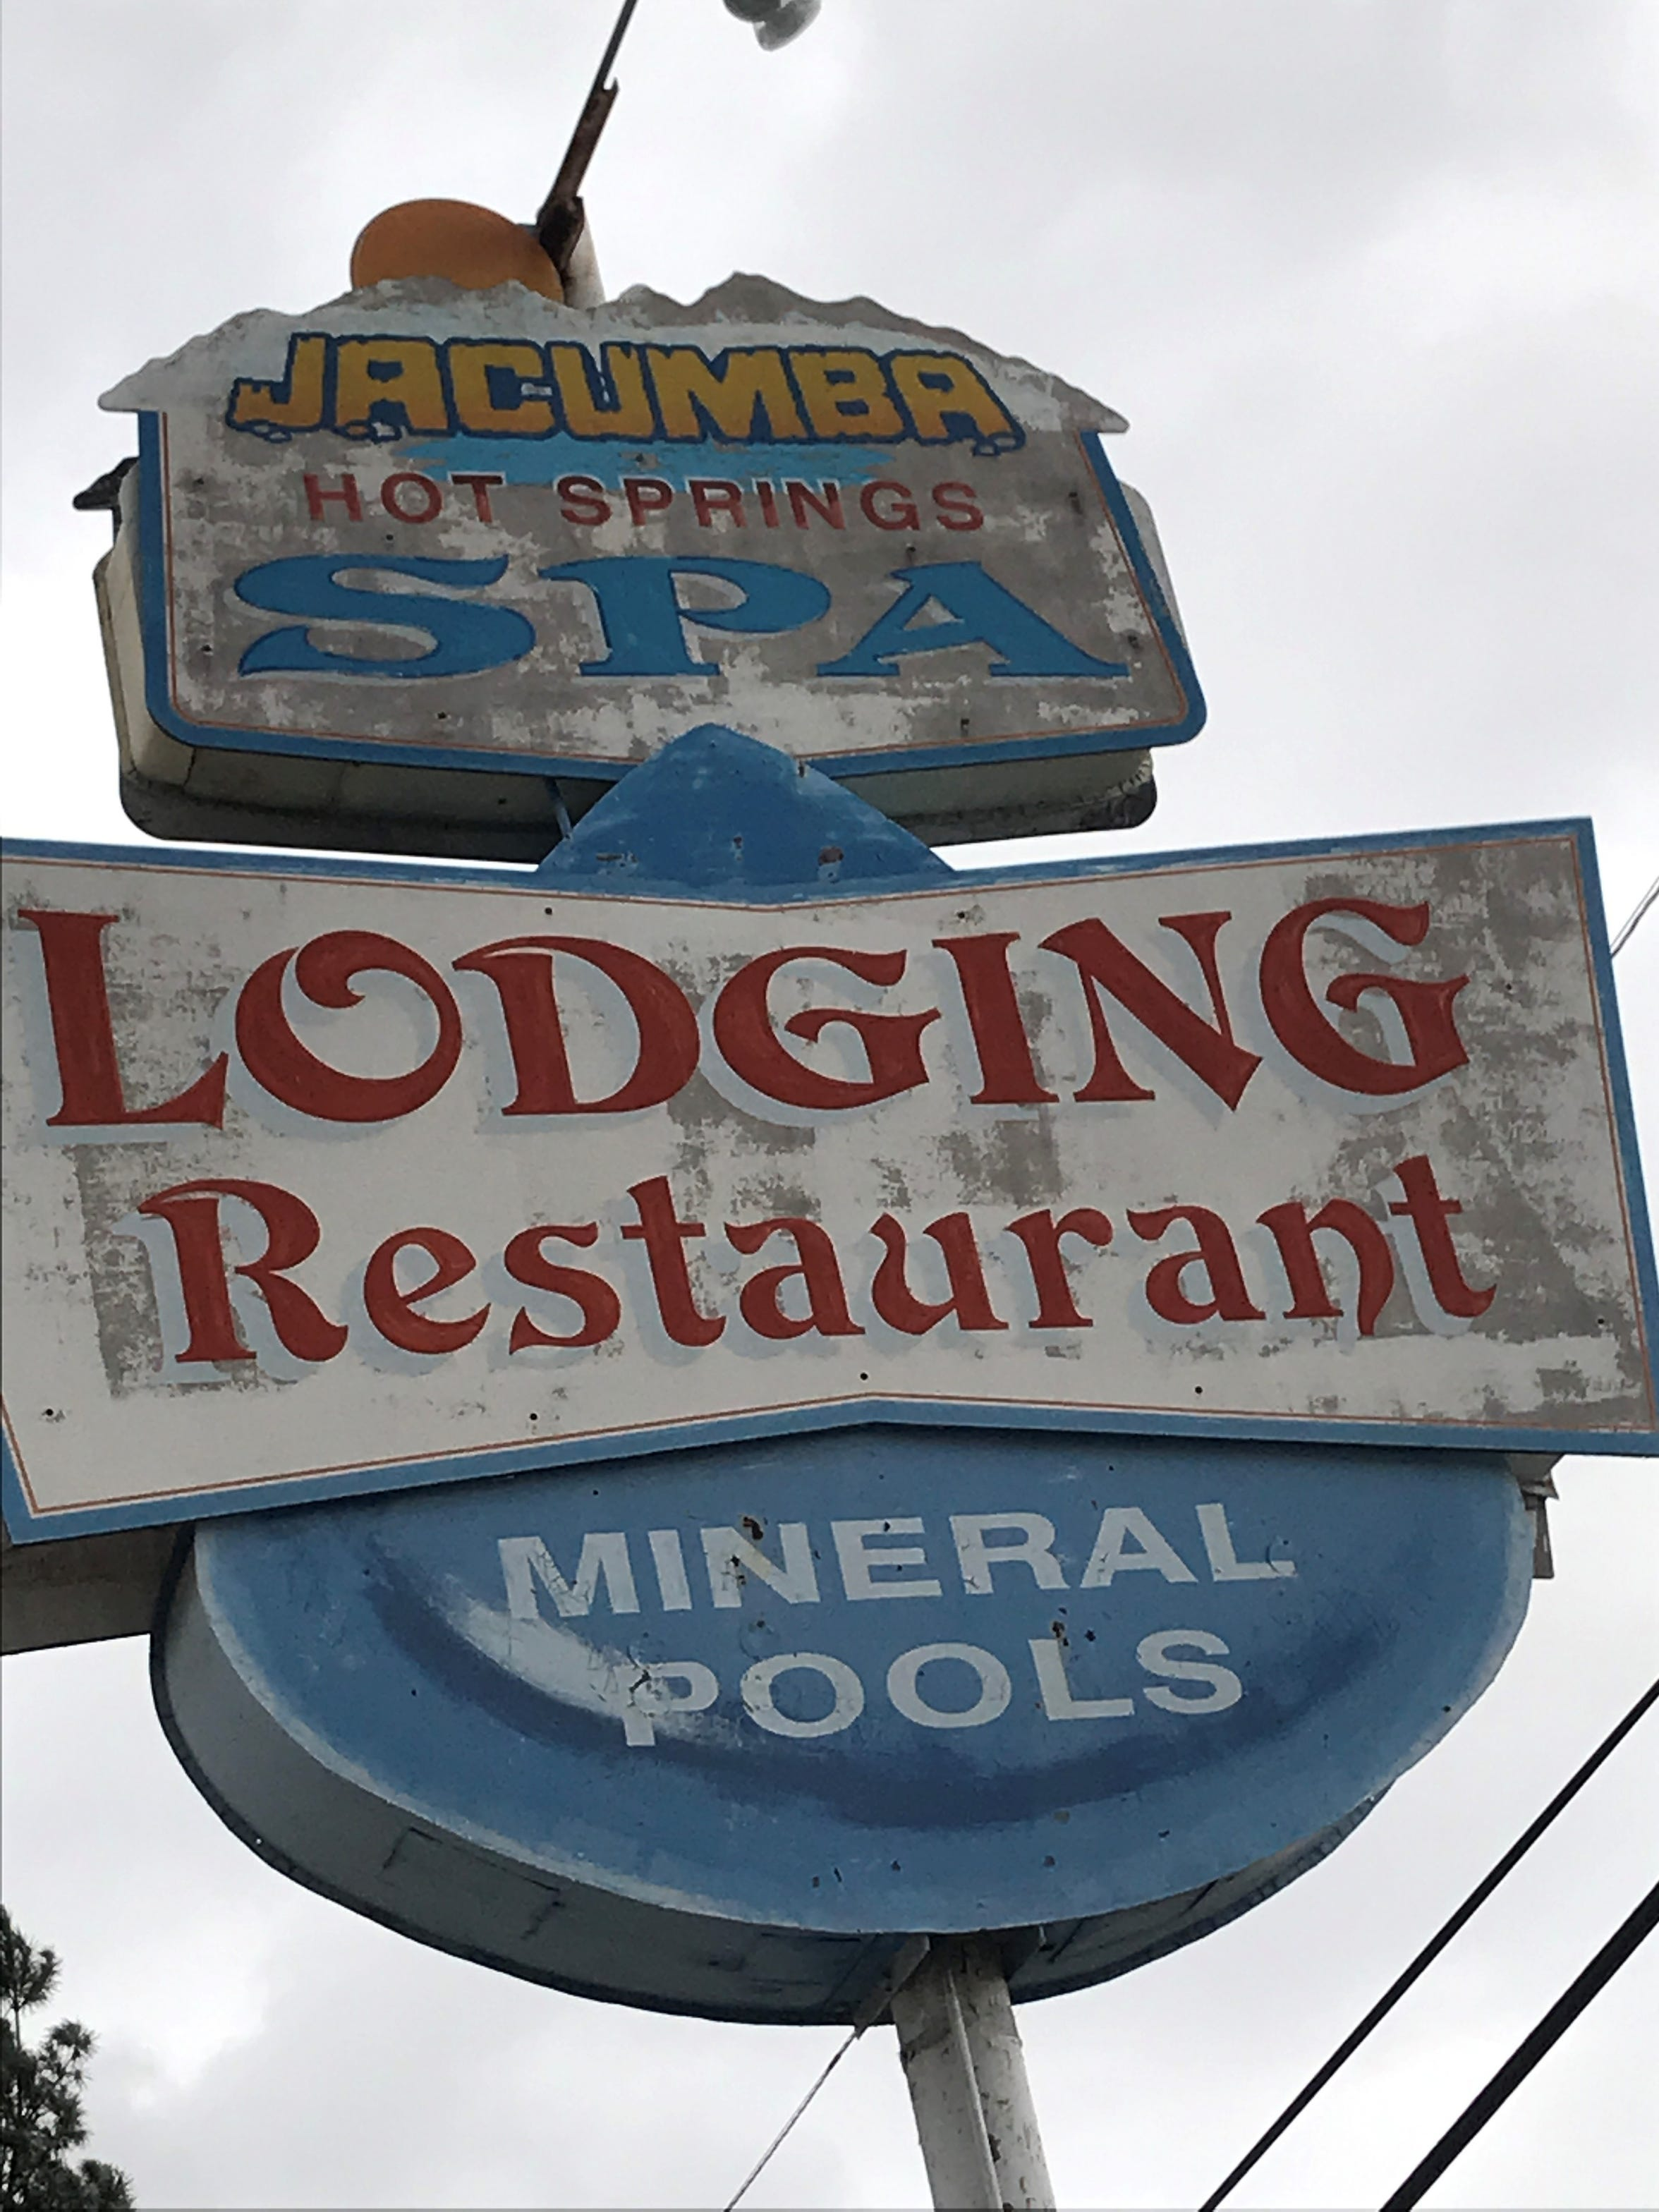 Natural mineral waters at Jacumba Hot Springs, Calif., have drawn humans and wildlife for thousands of years